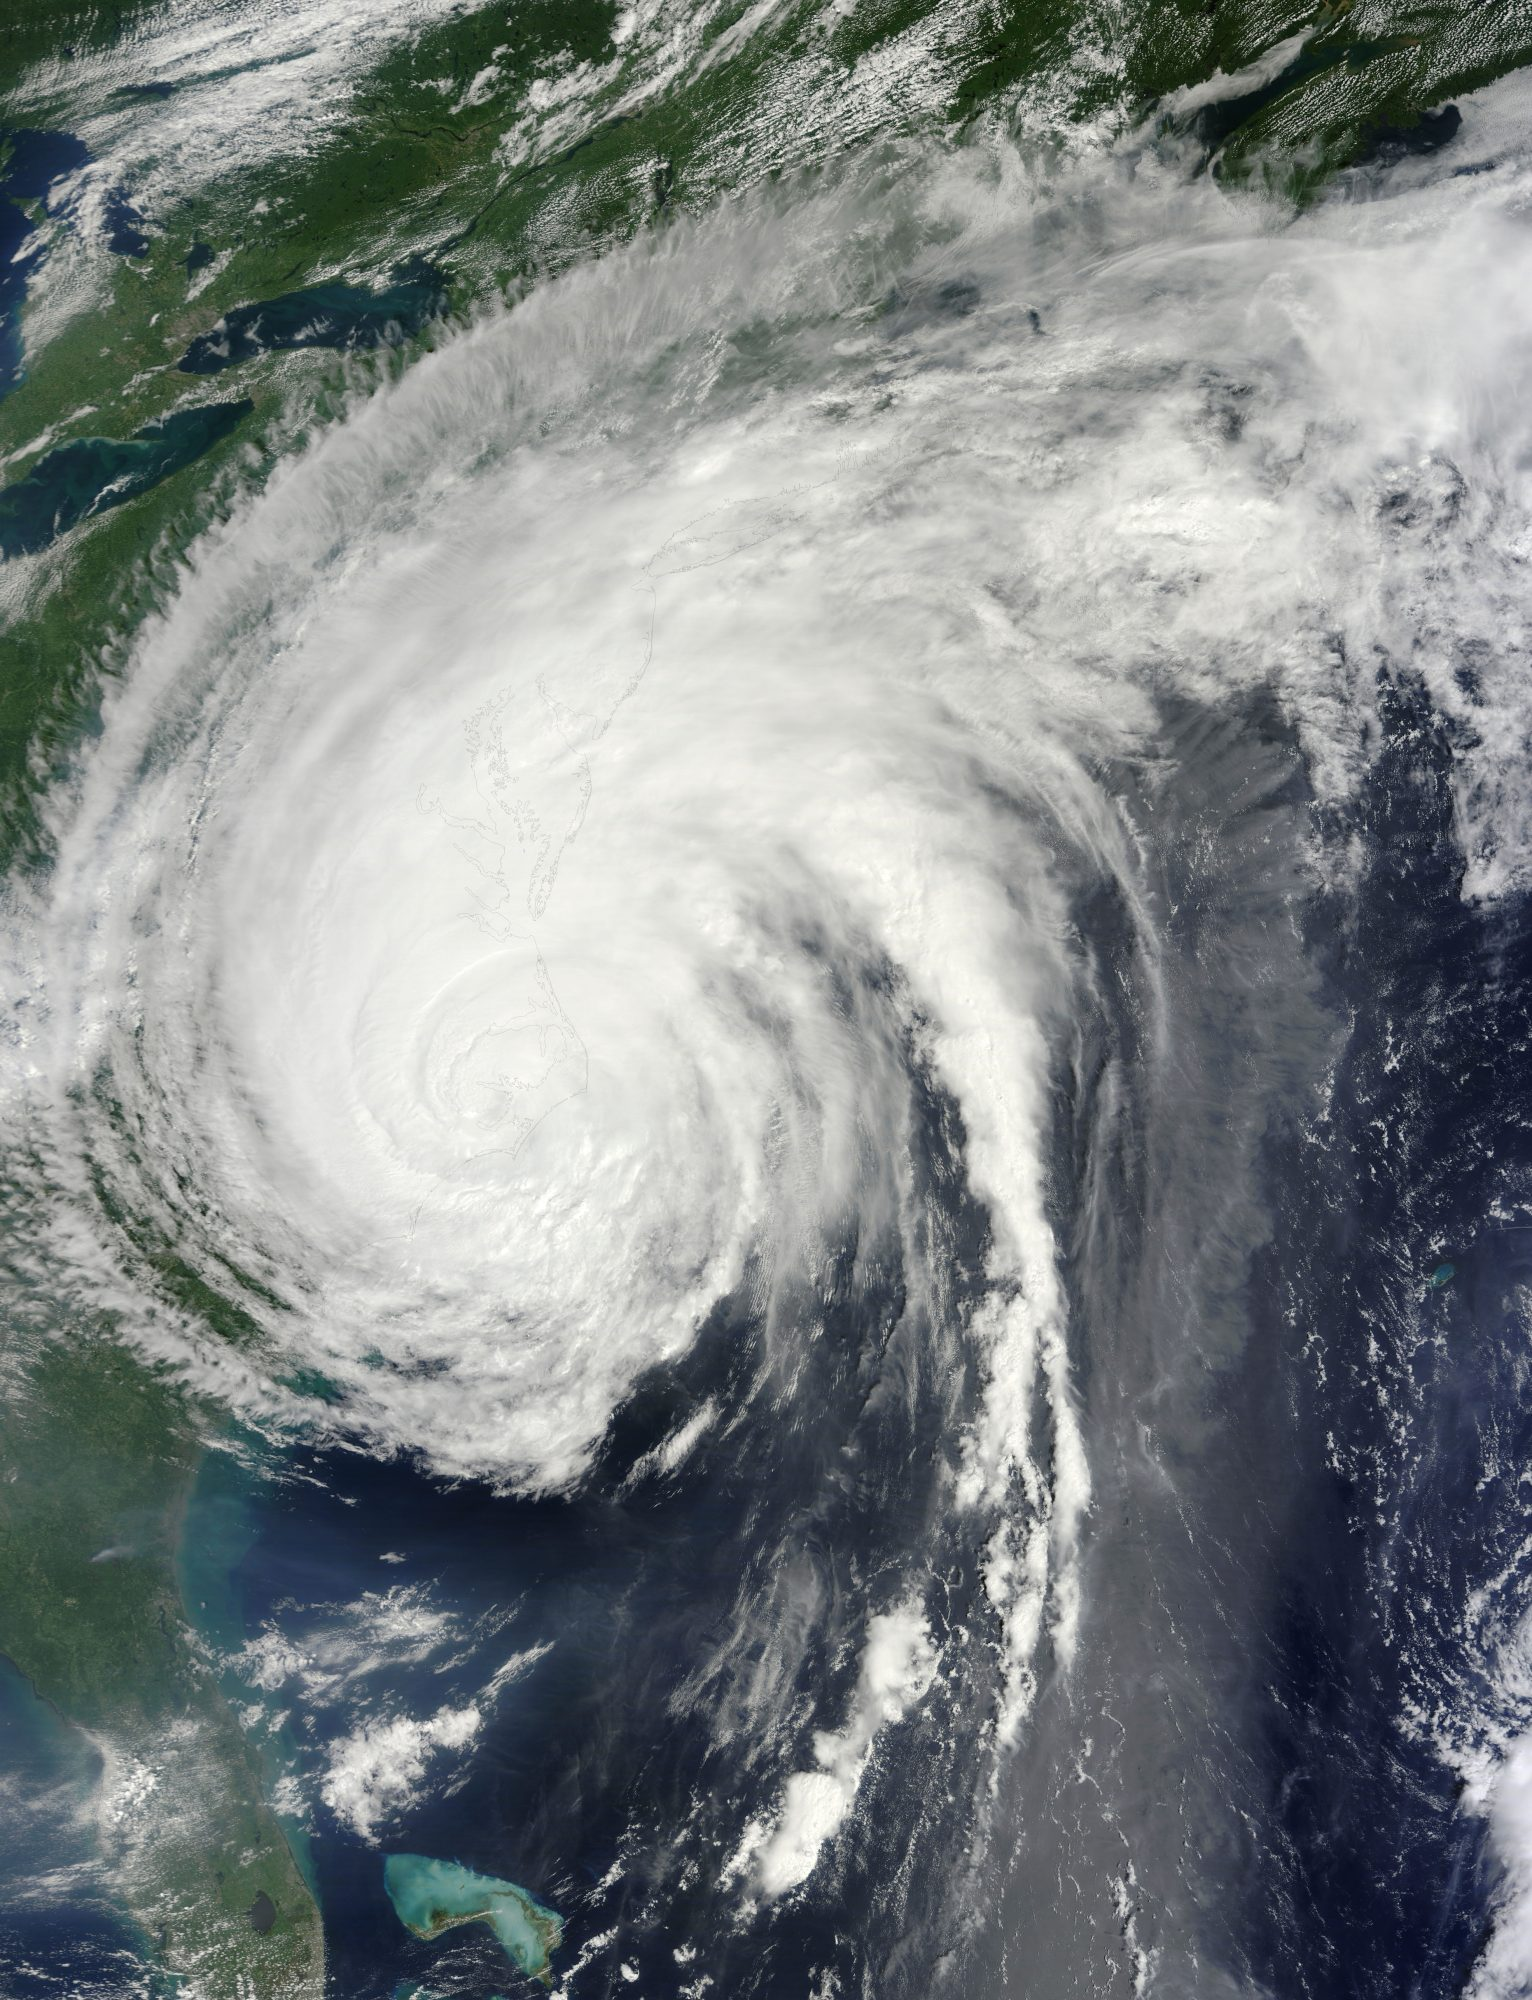 Hurricane Irene made landfall initially in North Carolina in August 2011 as a Category 1 hurricane; it then moved northeast, blowing through the mid-Atlantic and New England and causing major flooding in New Jersey, Massachusetts, and Vermont. Cost: $15.8 billion